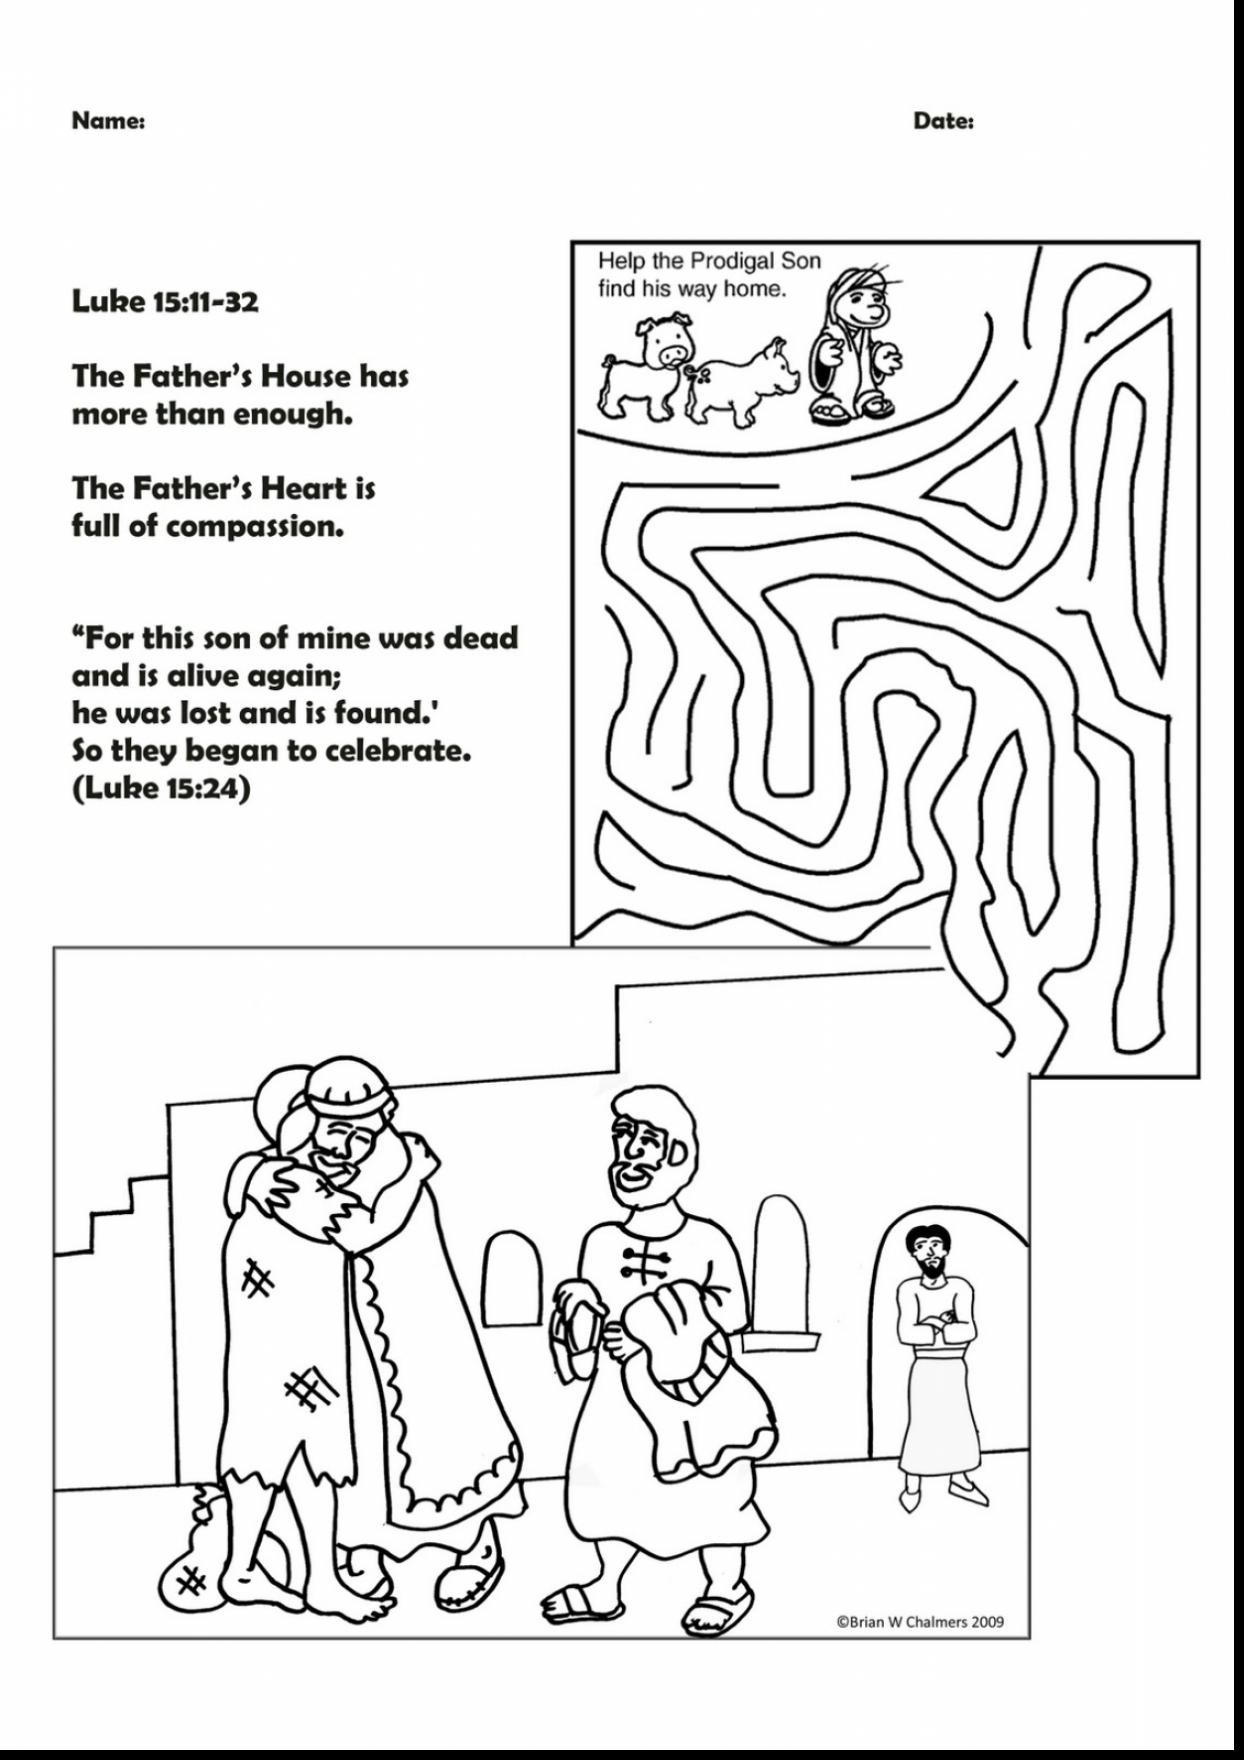 30 Prodigal son Coloring Pages Gallery - Coloring Sheets